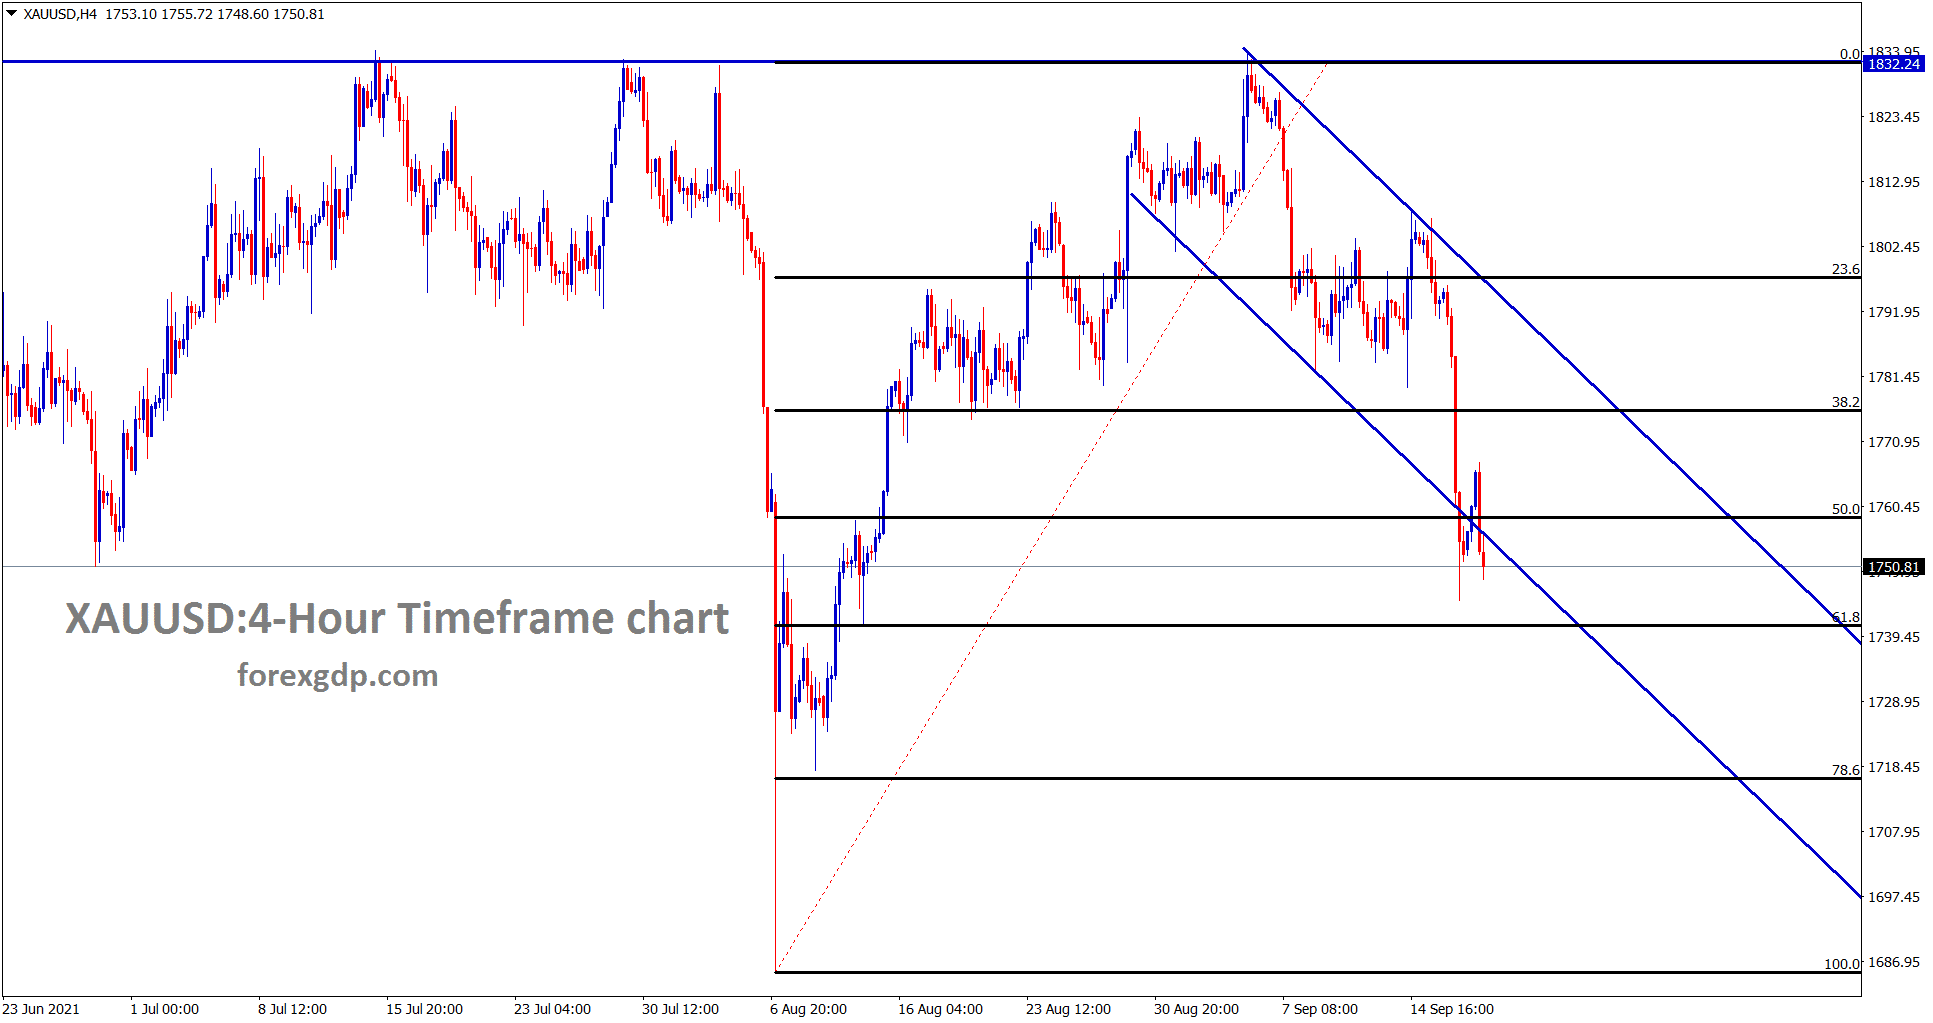 Gold is ranging between the 50 to 61 retracement zone